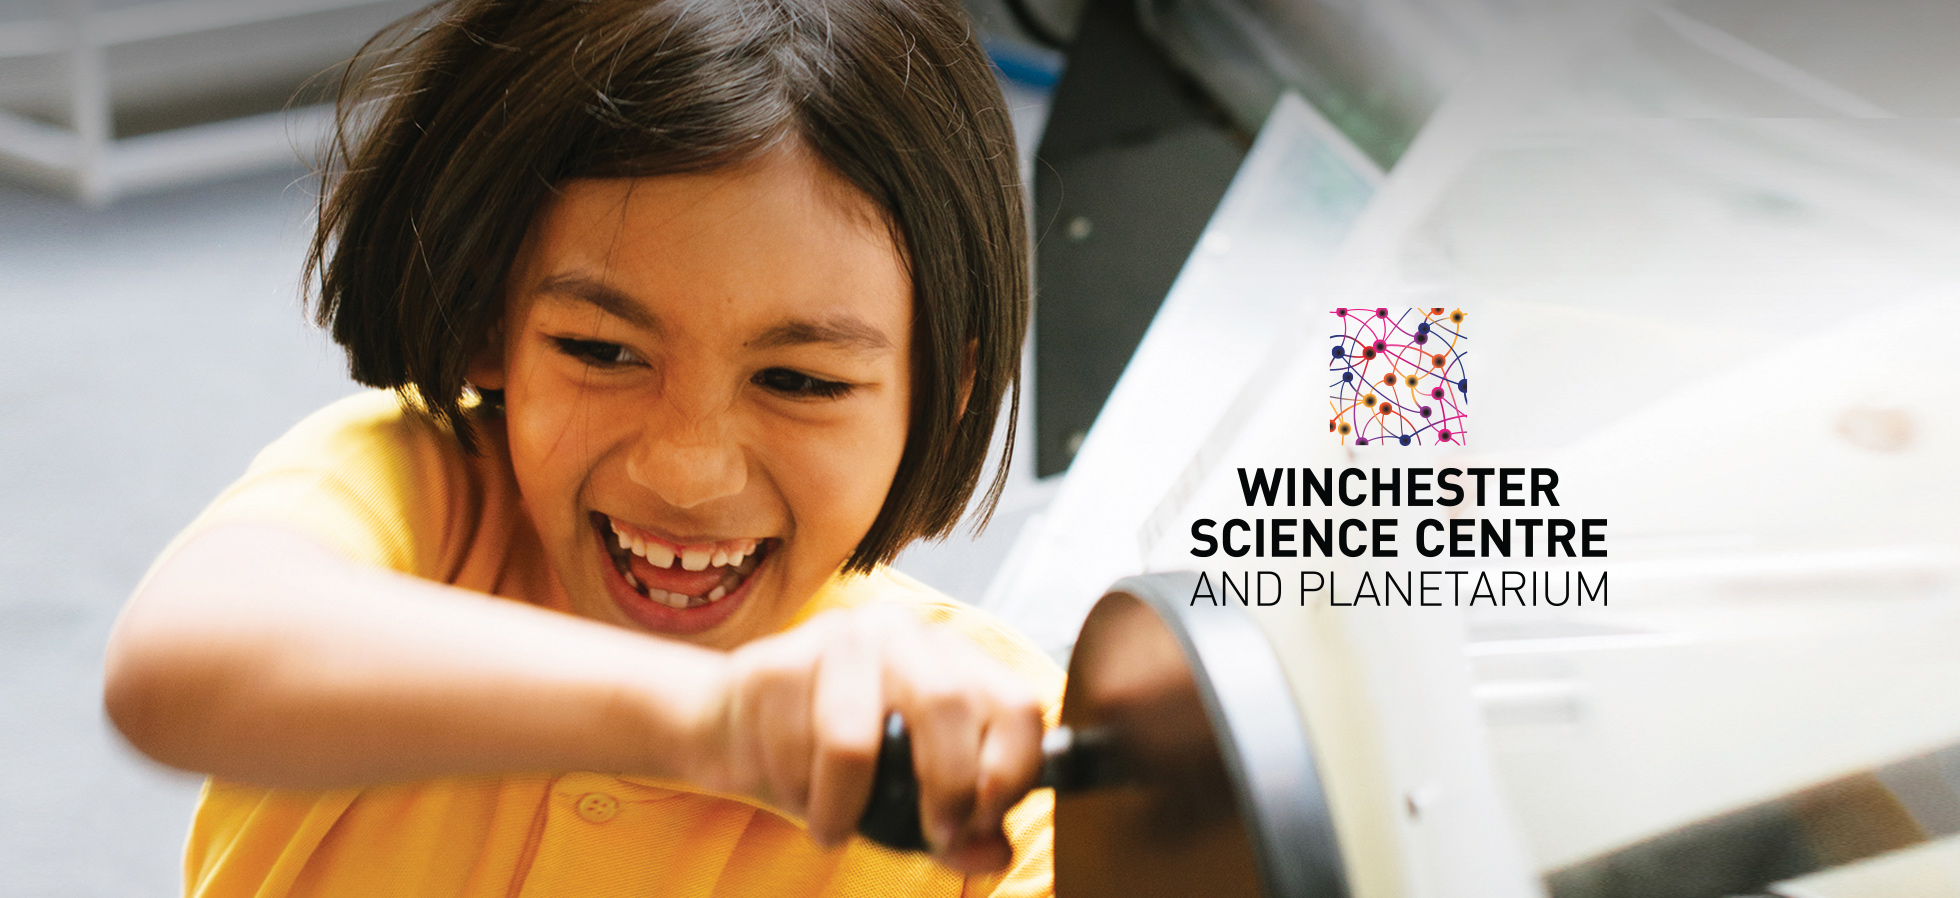 Branding for Winchester Science Centre